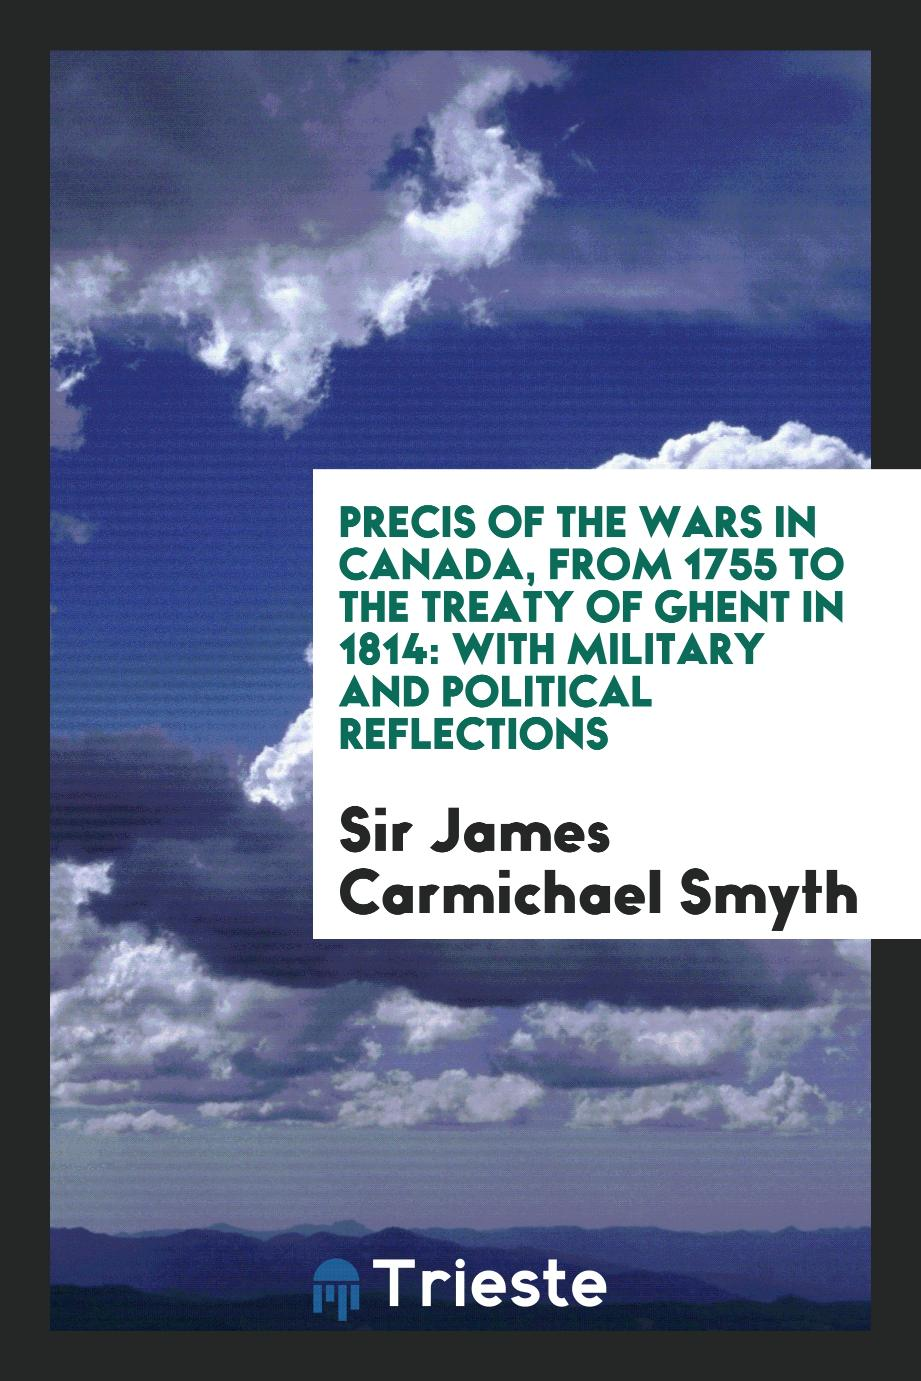 Precis of the Wars in Canada, from 1755 to the Treaty of Ghent in 1814: With Military and Political Reflections